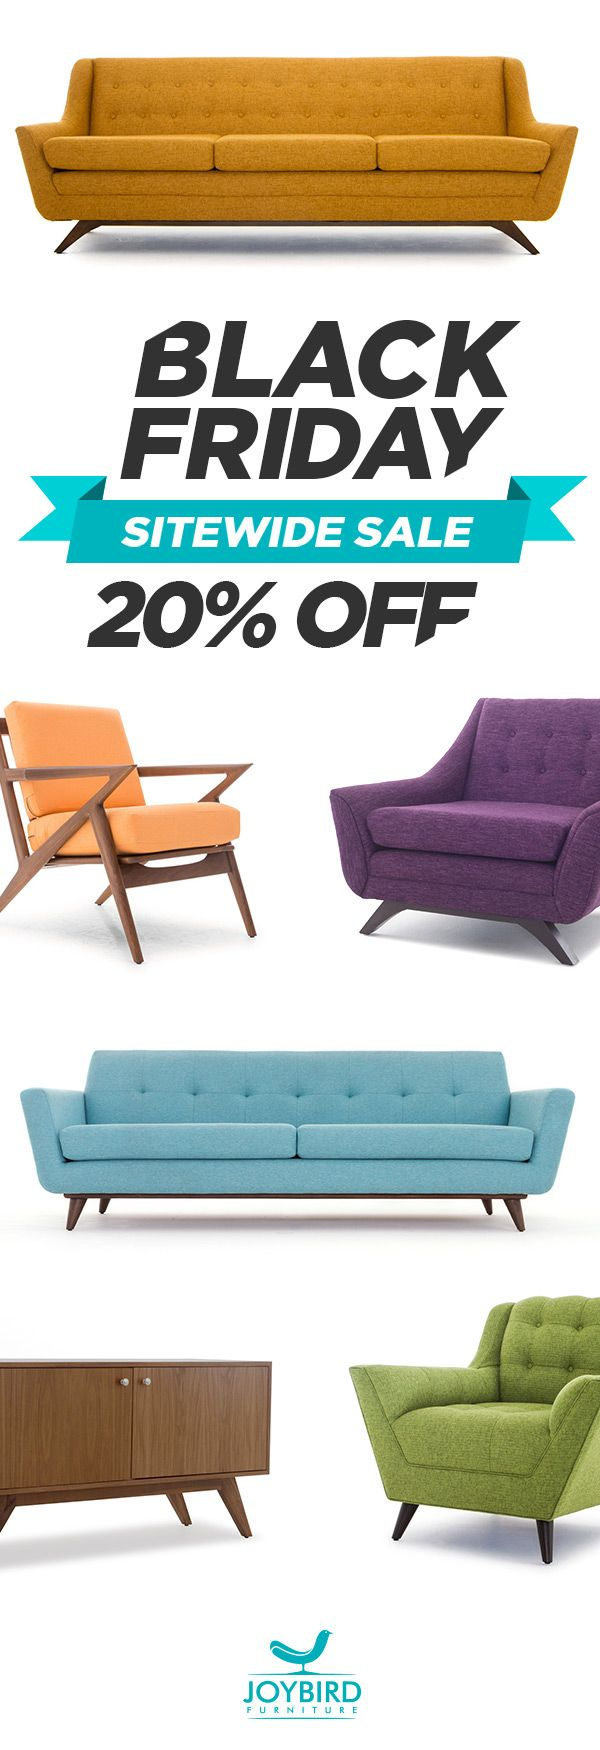 Make A Statement With Iconic Mid Century Modern Furniture From Joybird Enjoy Free In Home Delivery Lifeti Furniture Design Modern Furniture Joybird Furniture